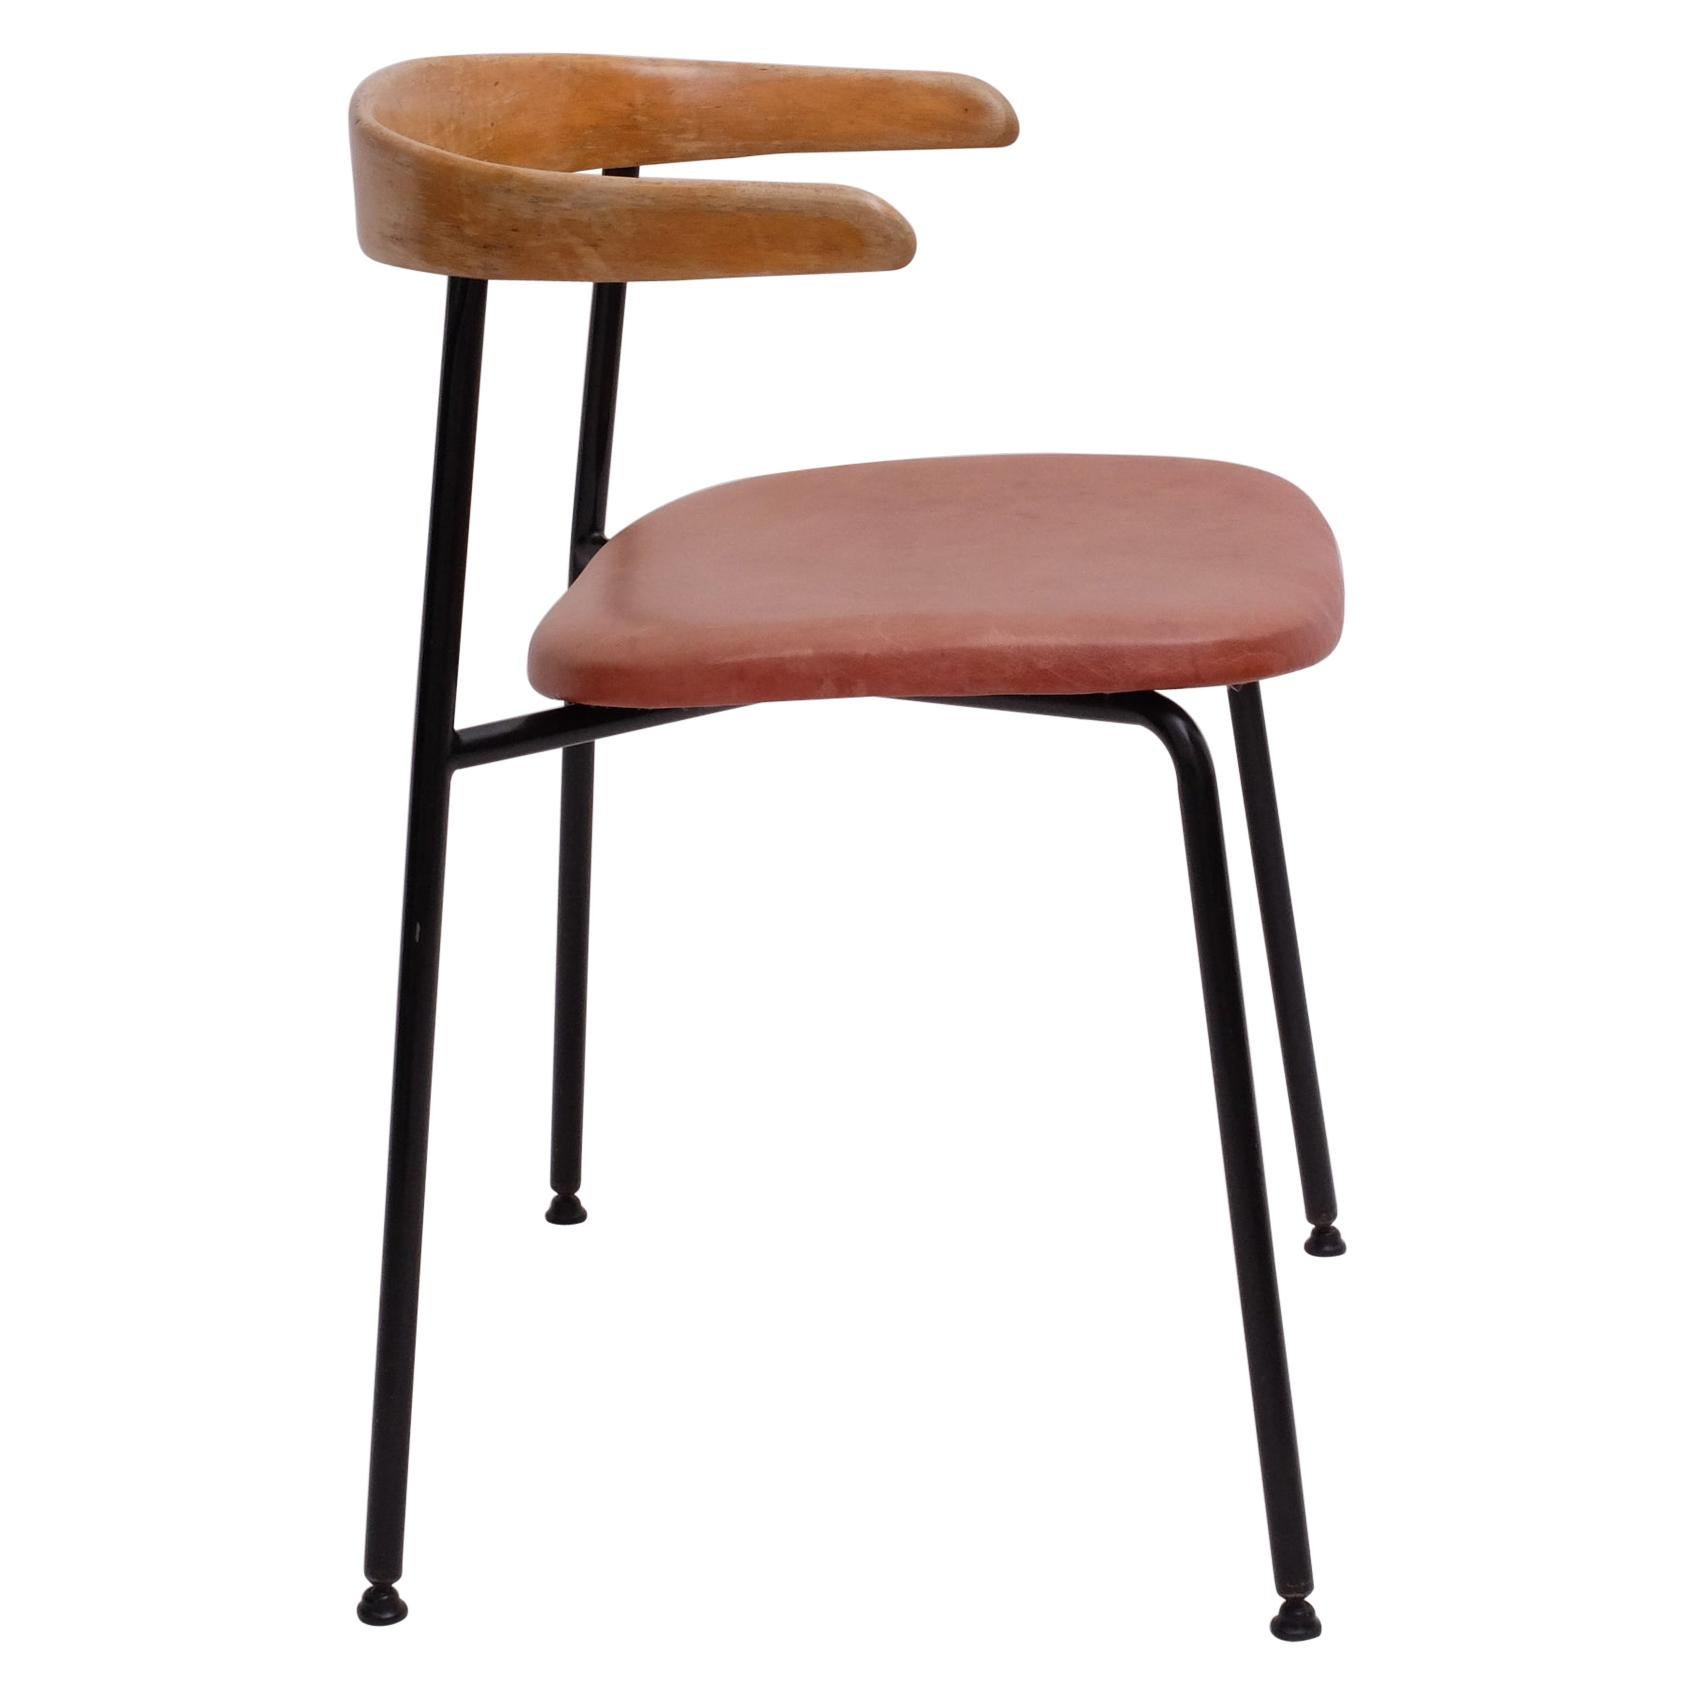 Rare Desk Chair by Sir Terence Conran c20 Chair, c.1960